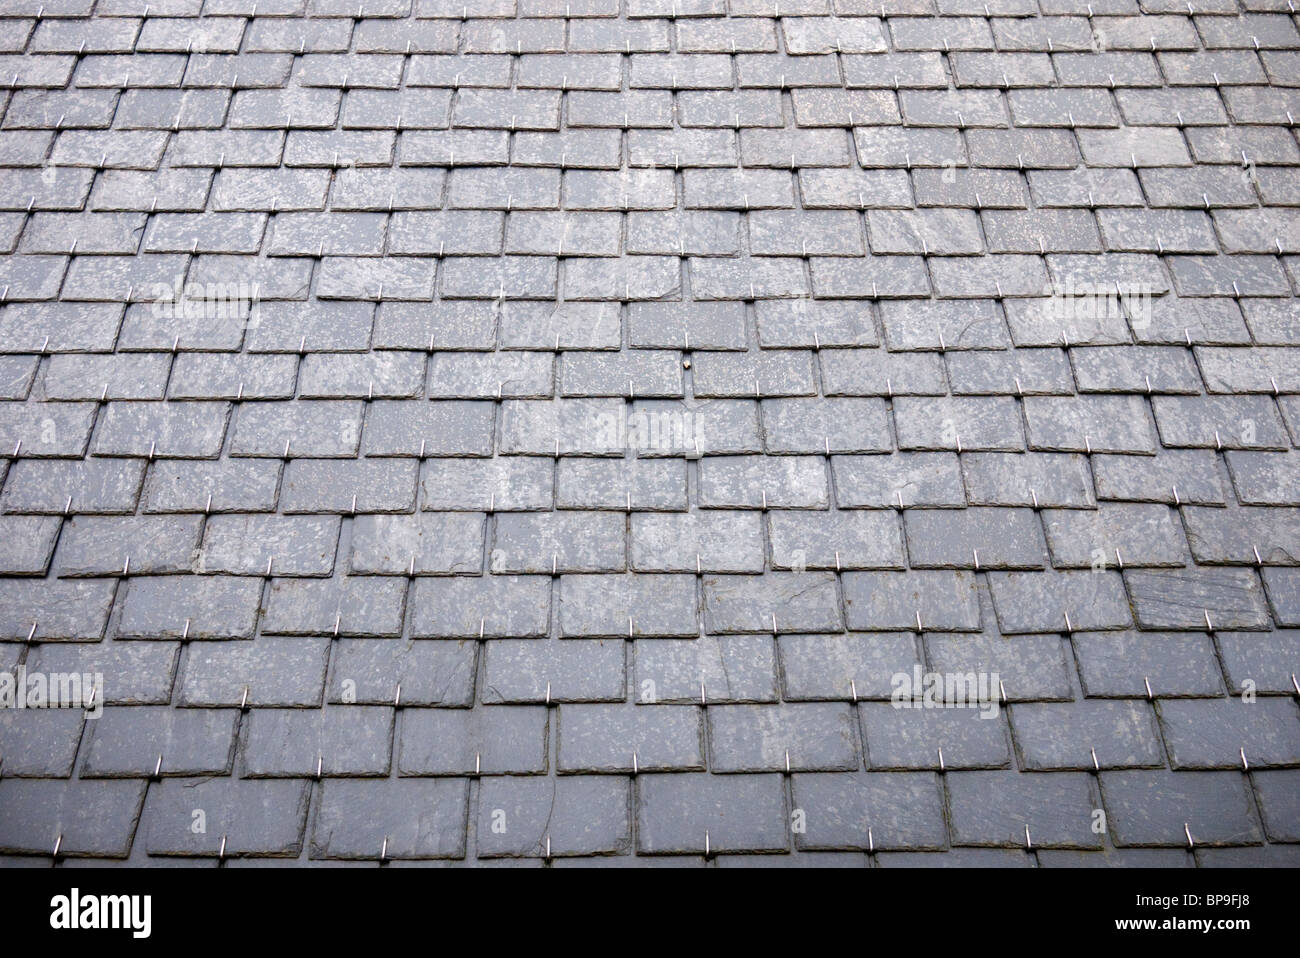 Roof Slates Thin Worn Out Loose Sliding Roofing Slates